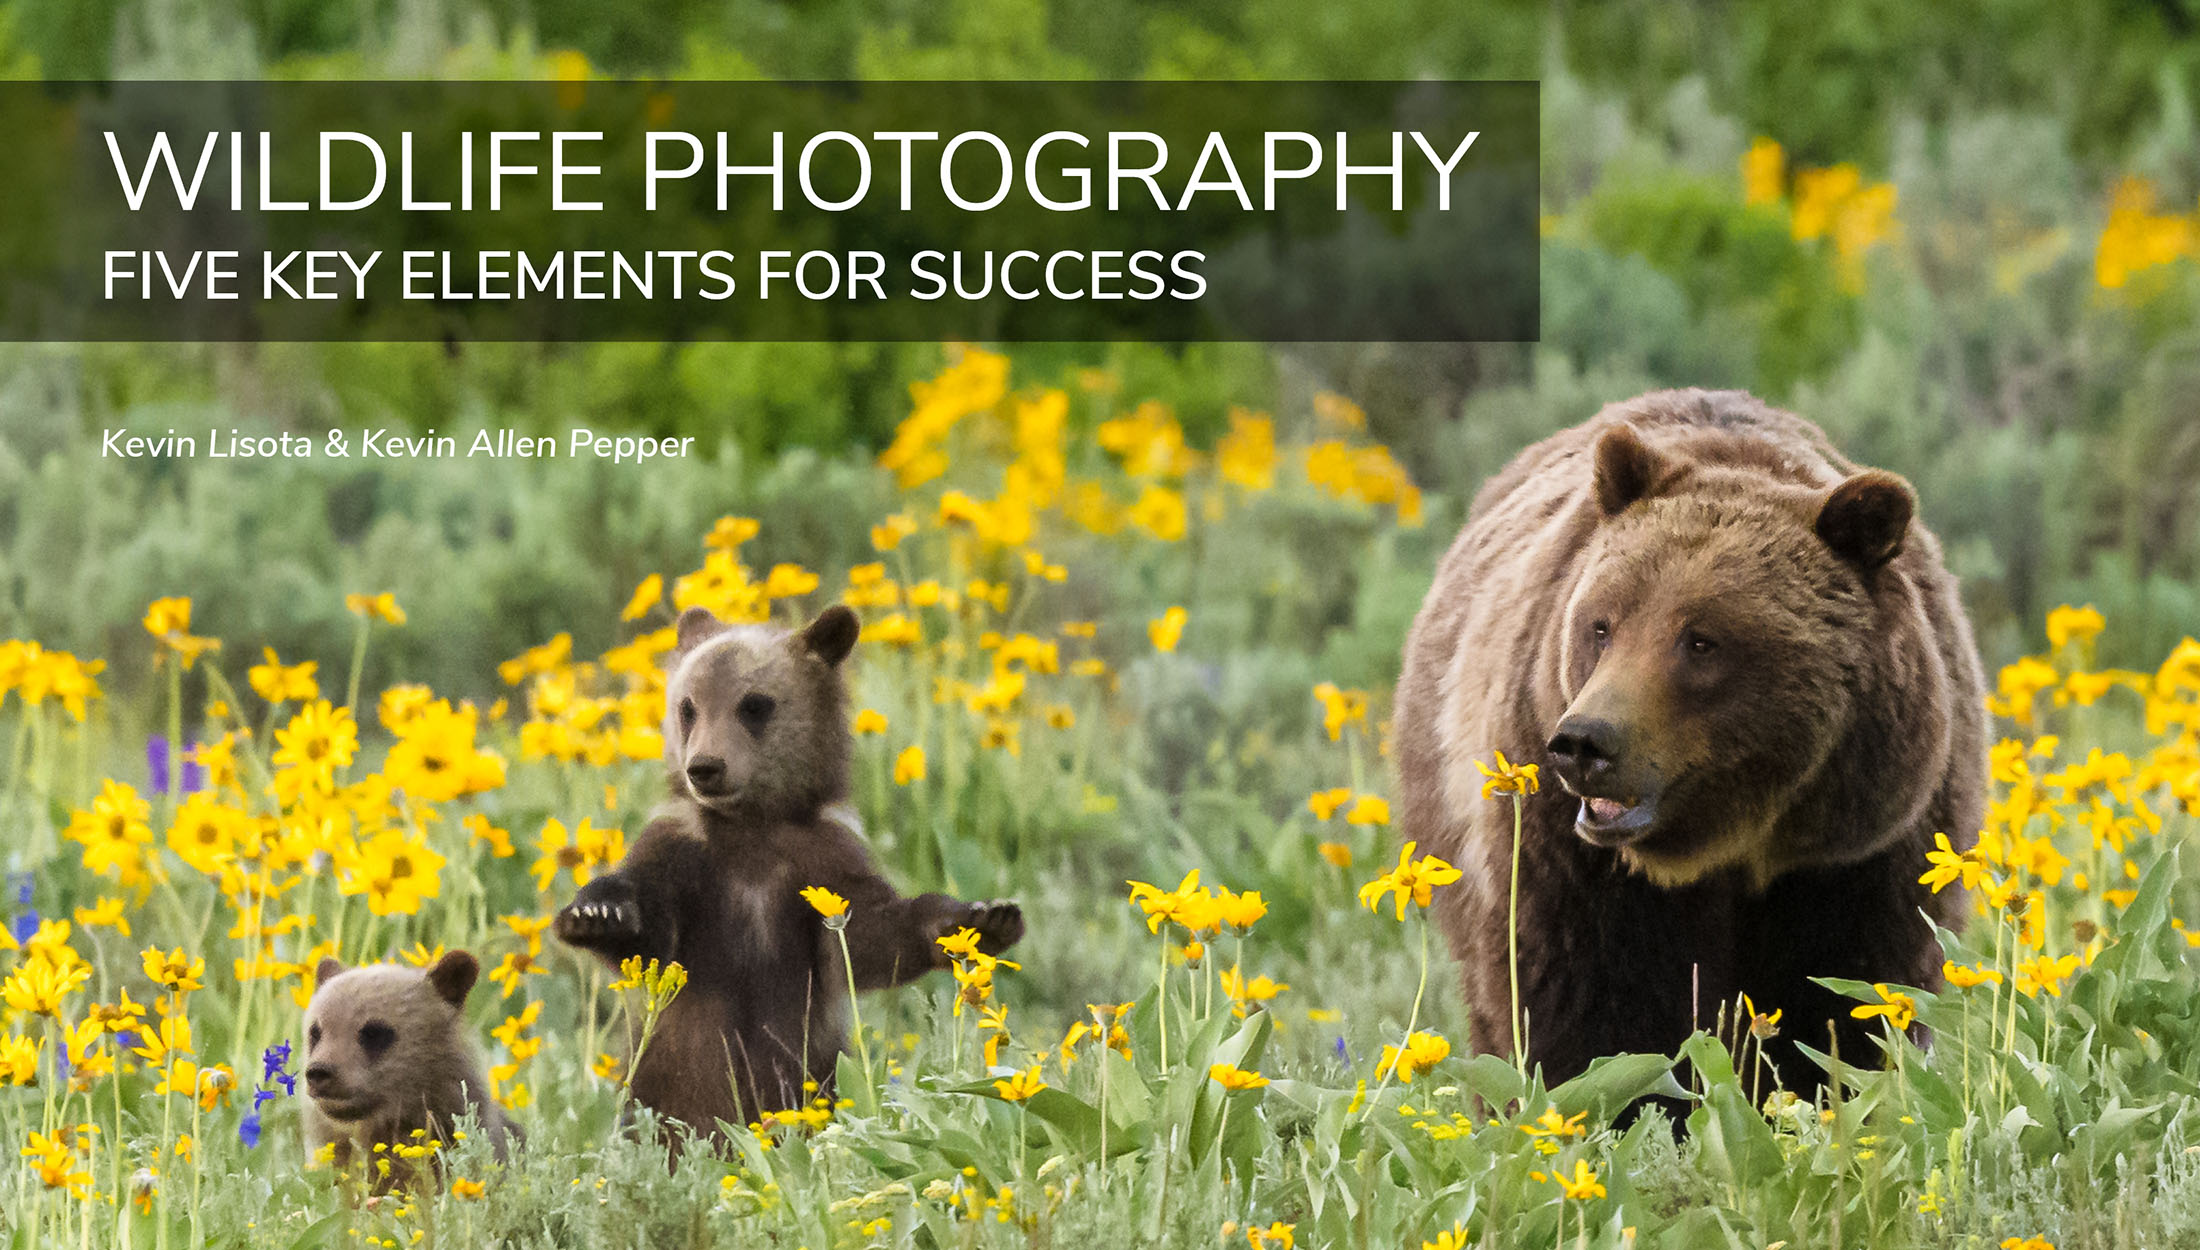 Wildlife Photography: Five Key Elements for Success